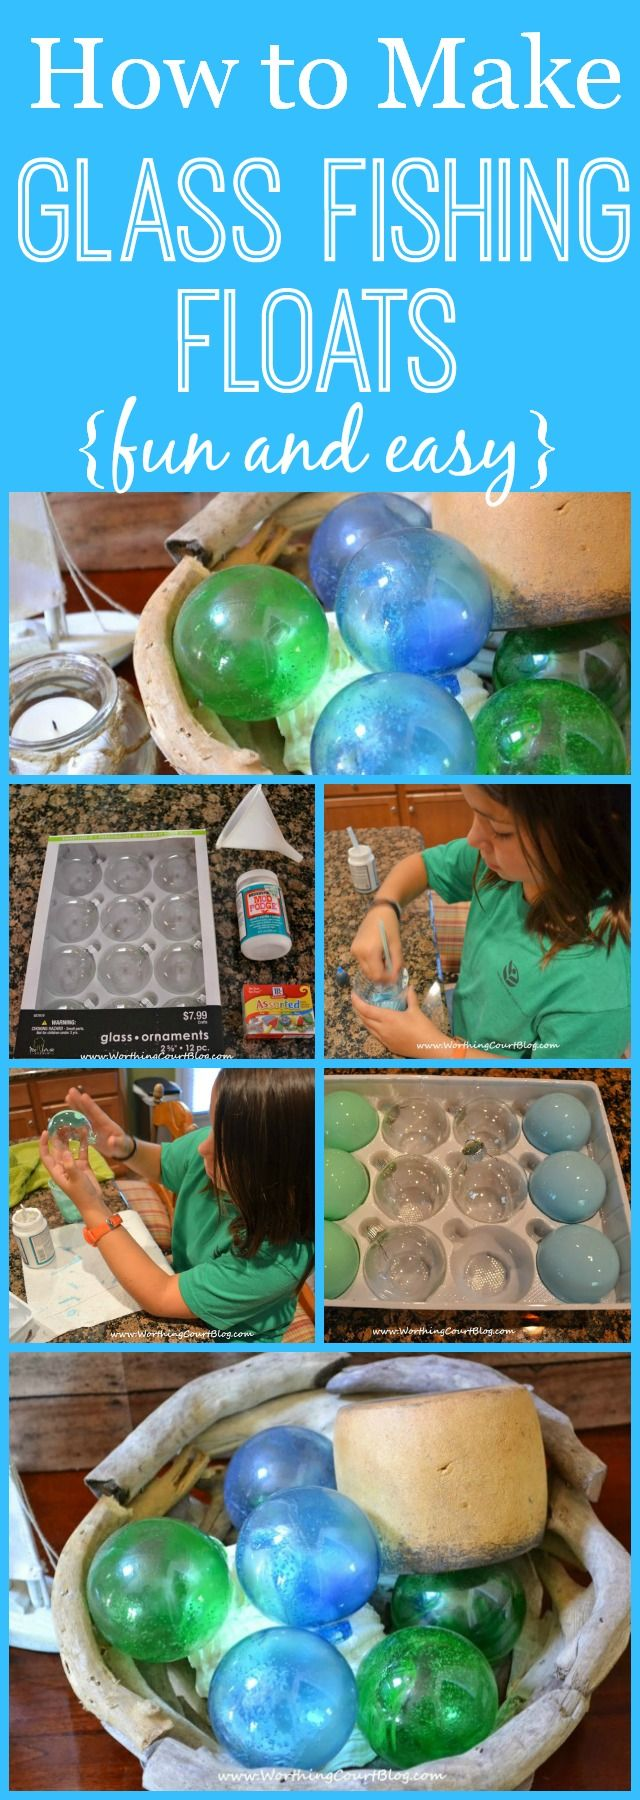 How To Make Glass Fishing Floats Using Clear Christmas Ornaments - Worthing Court